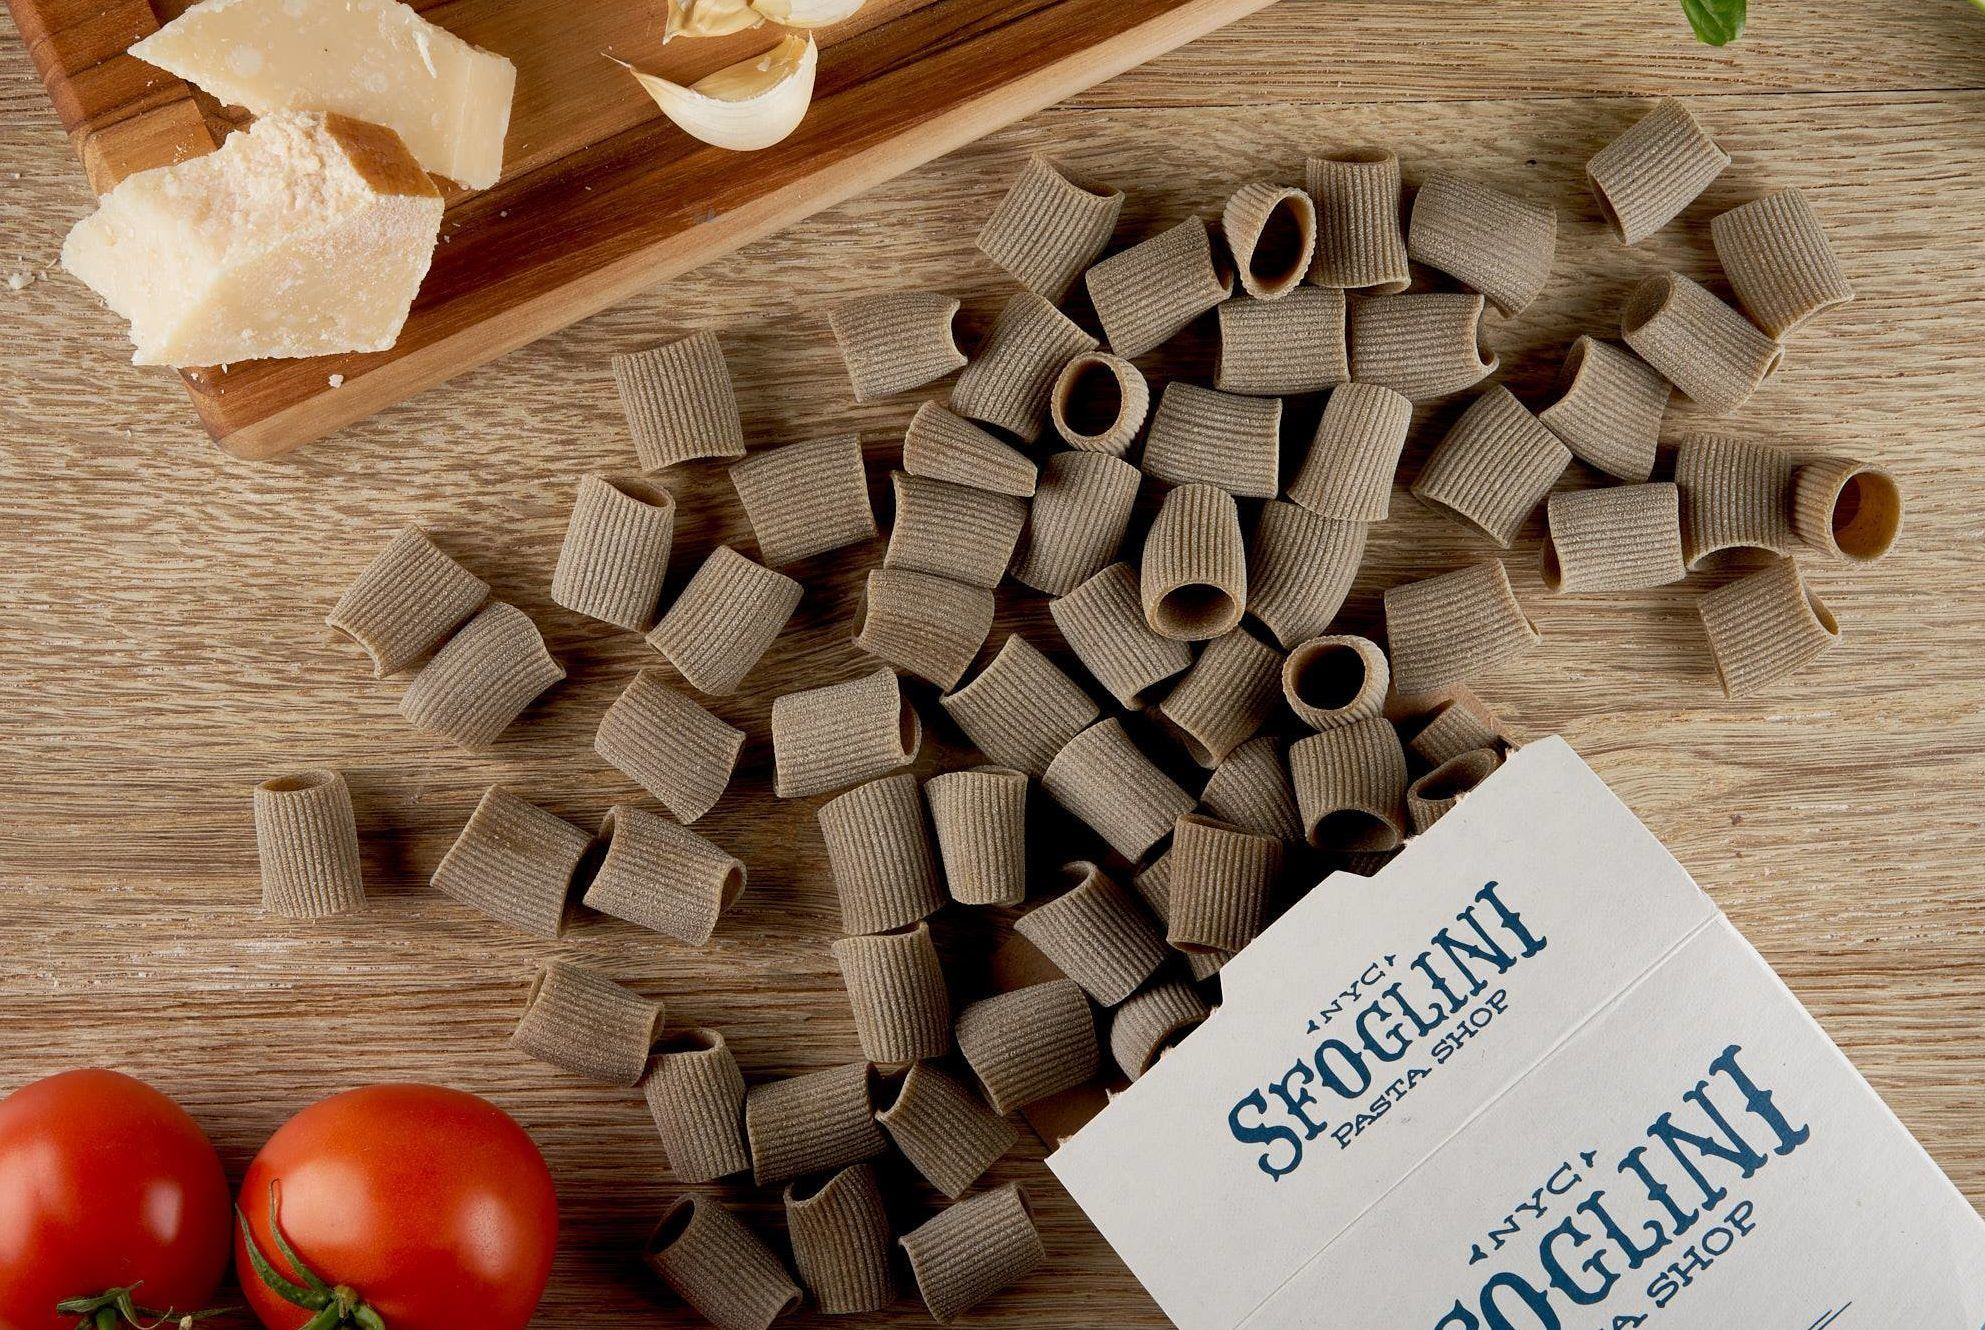 Sfoglini Hemp Pasta spills out onto a kitchen counter, with other ingredients neabry including tomatoes, Parmesan cheese and garlic. Sfoglini's hemp pasta joins a unique product line that includes season flavors like Beet Fusilli, Cuttlefish Ink Spaccatelli, and Saffron Malloreddus.